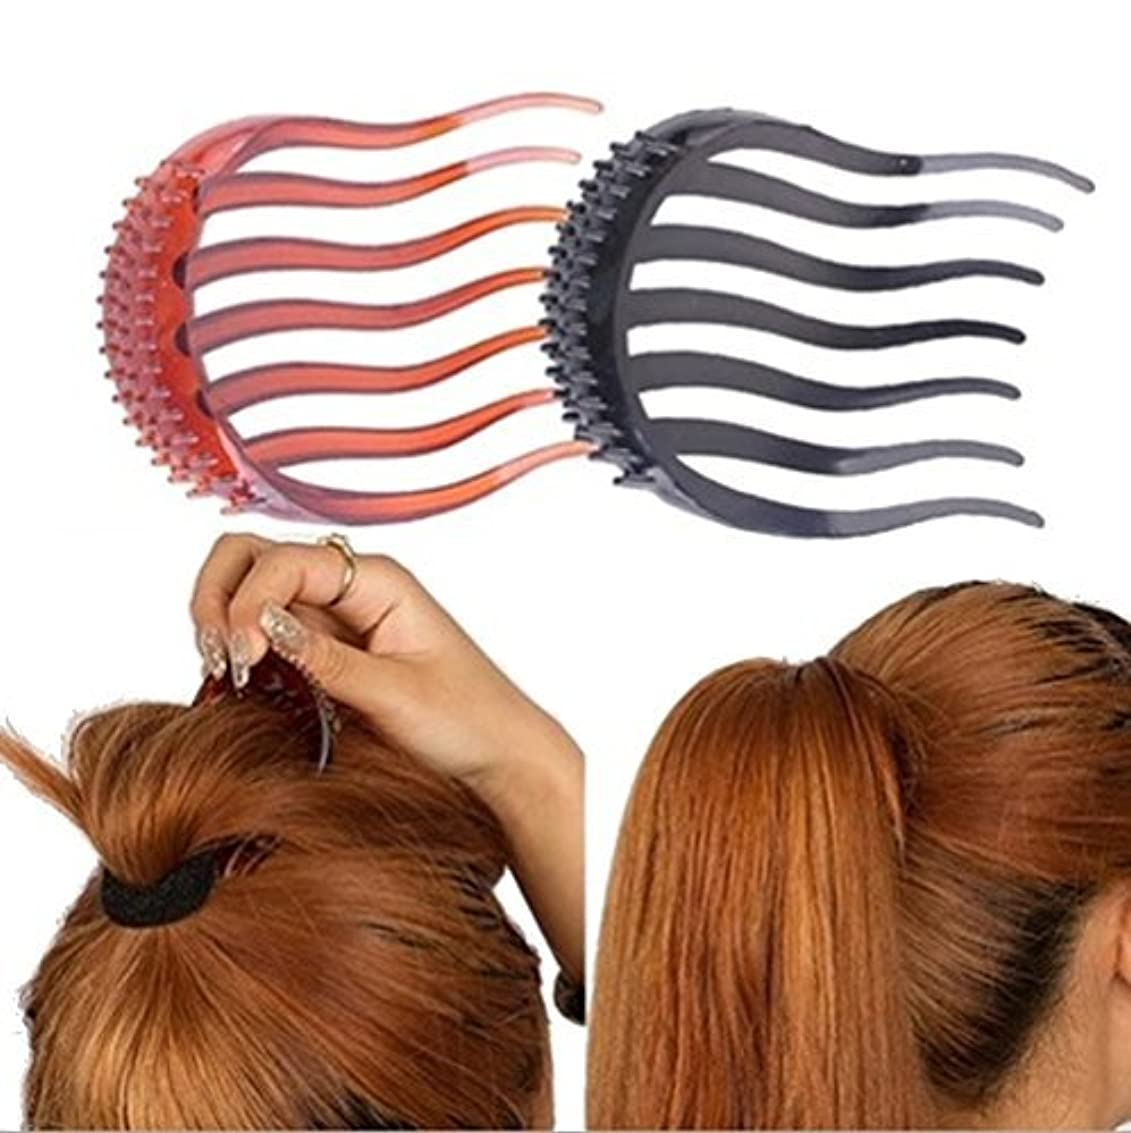 会員質素な役割2Pcs Ponytail Bump it UP Hair Styling Insert Comb Fluffy Hair Comb (1Black+1Coffee) [並行輸入品]